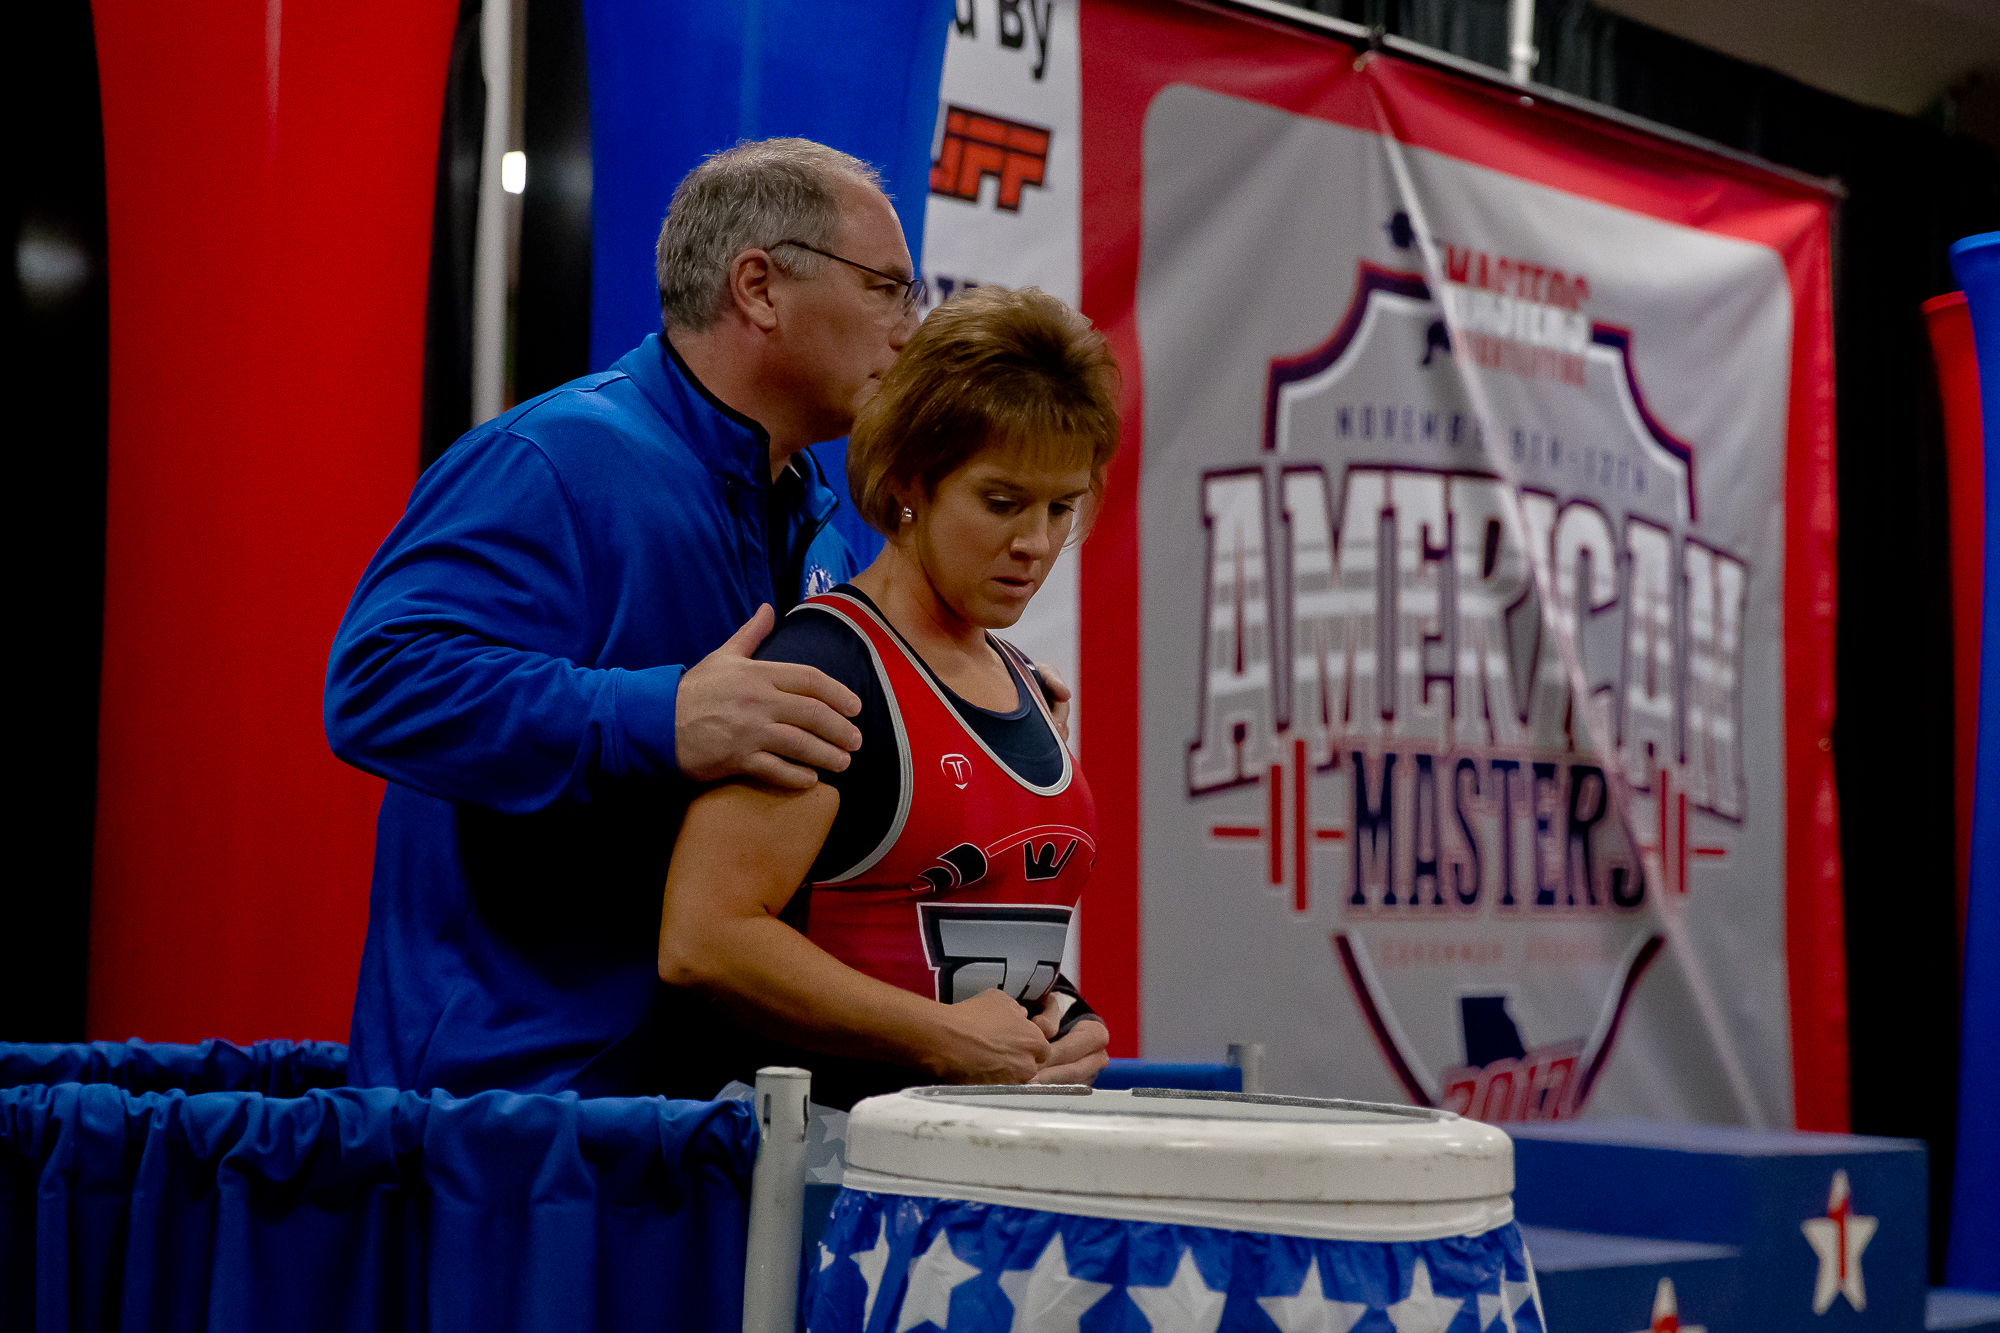 2017-american-masters-weightlifters-savannah-georgia-65.jpg